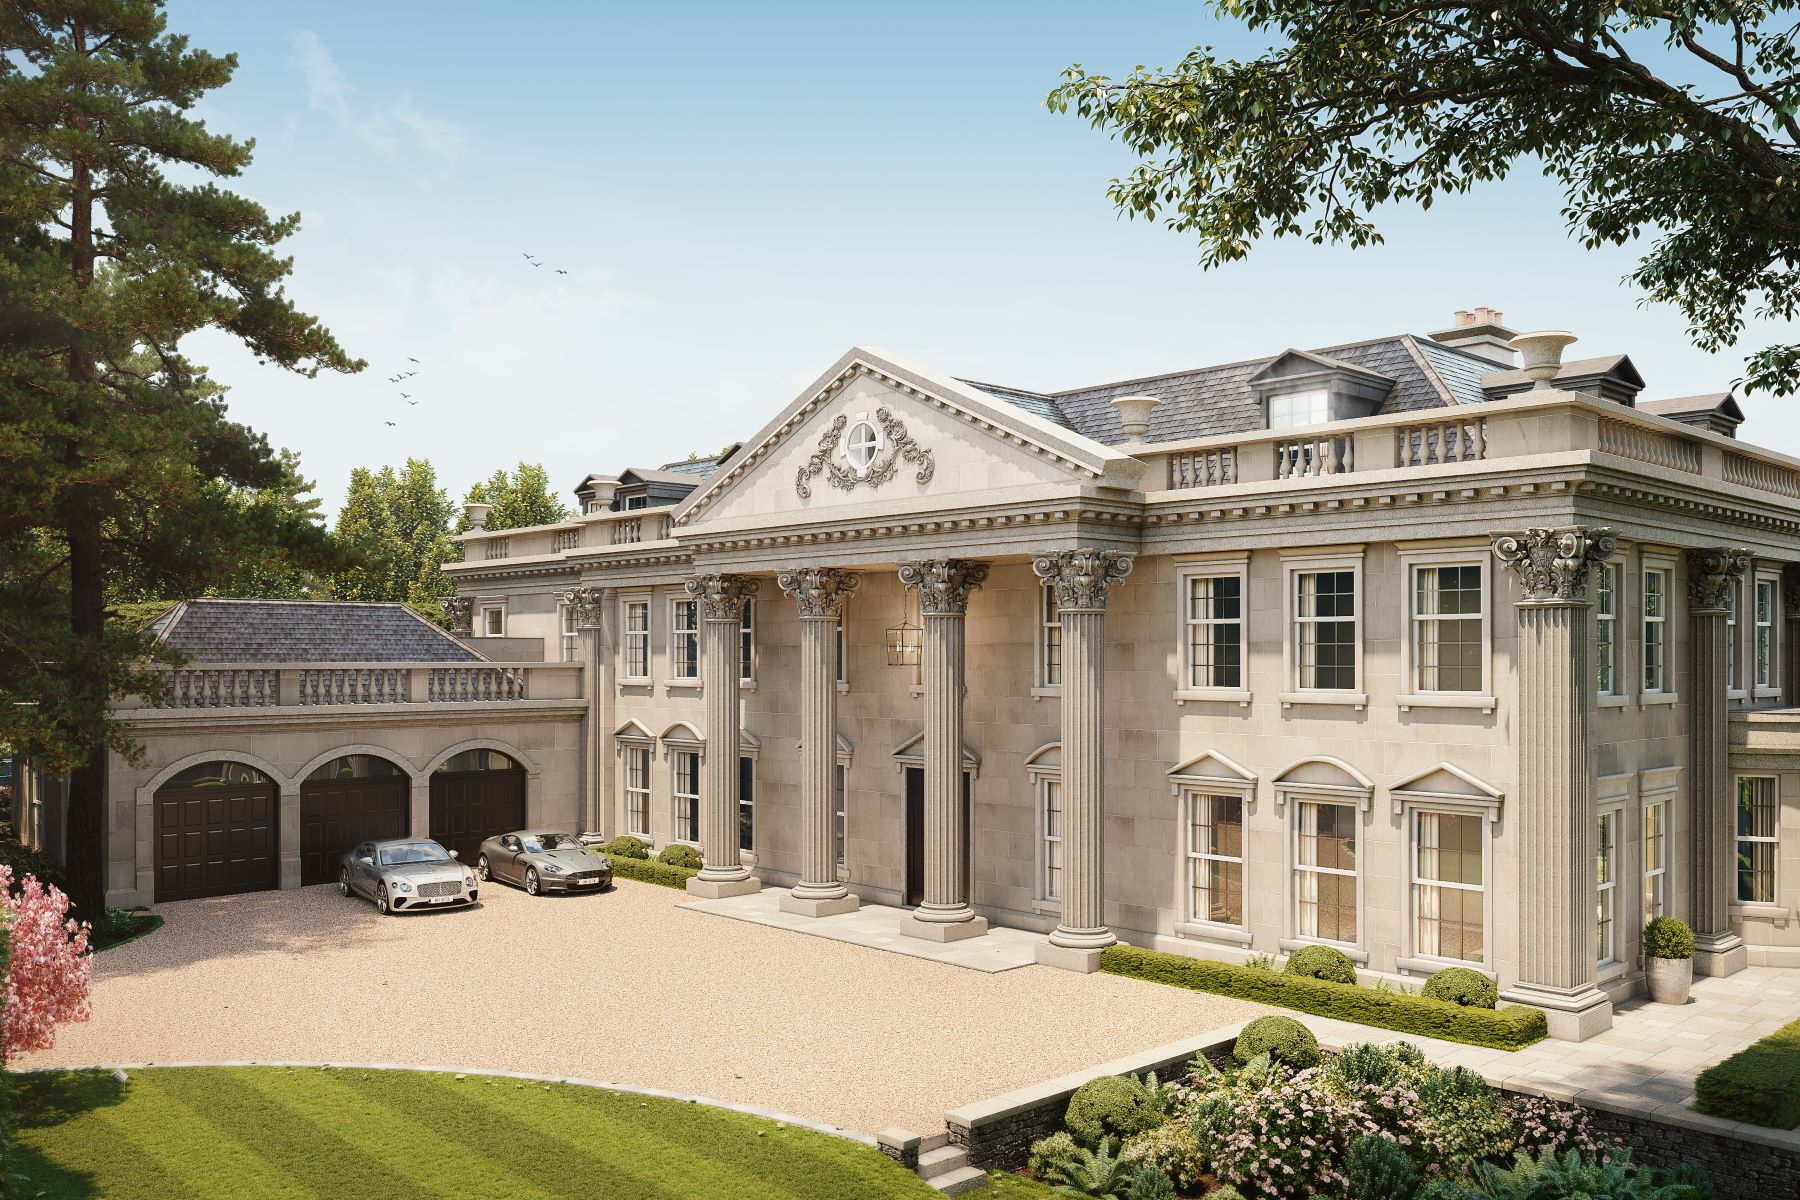 Single Family Homes pour l Vente à Hampton Hall Queens Drive Other England, Angleterre KT22 0PB Royaume-Uni